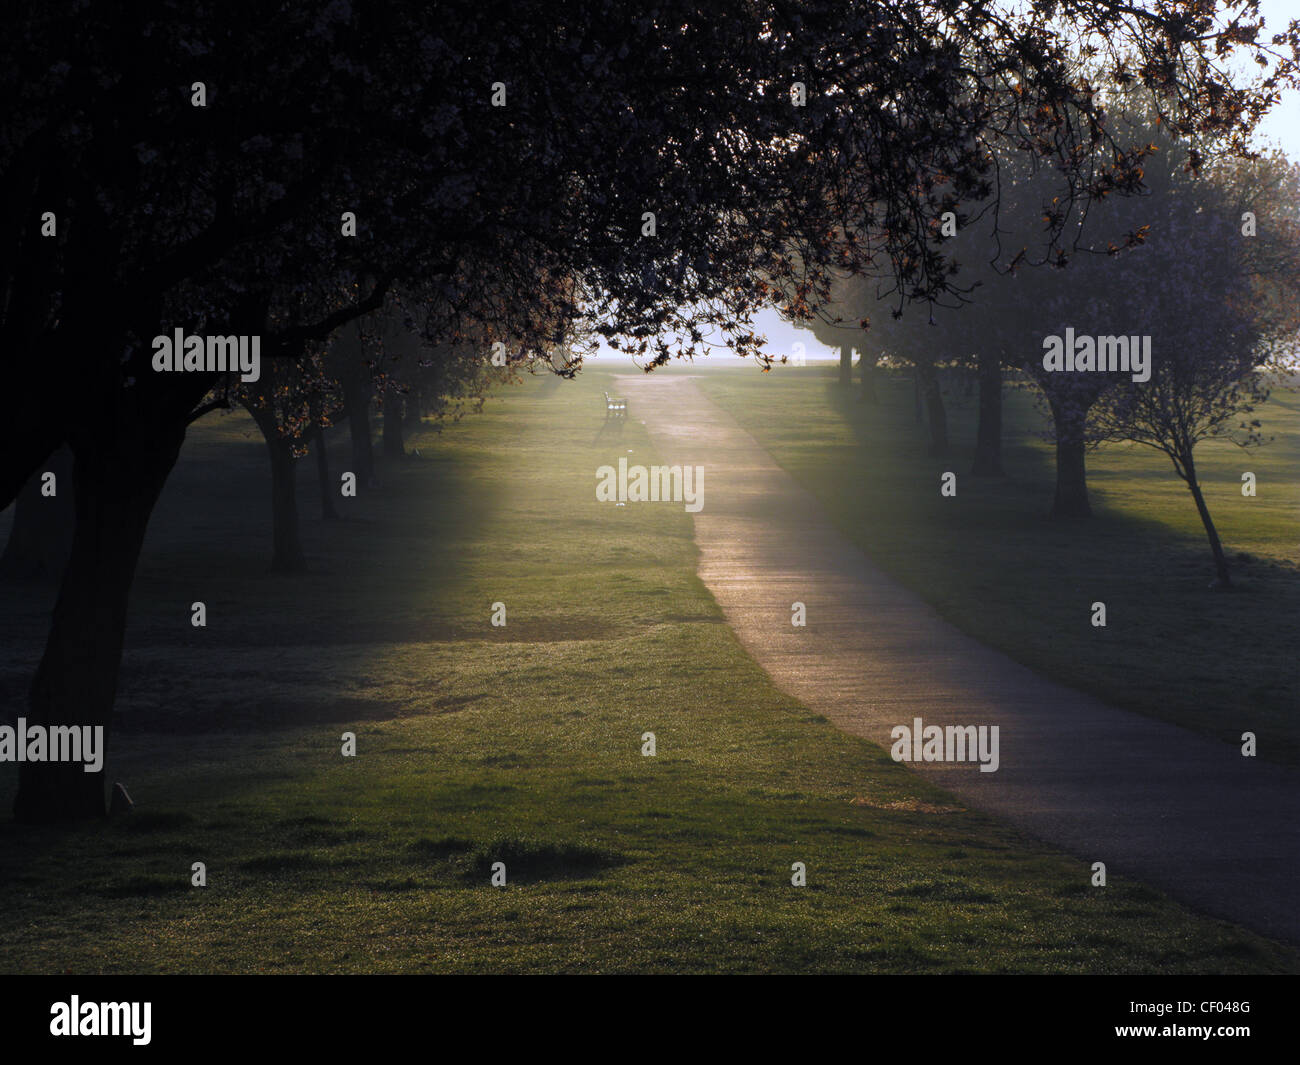 Sun through trees on a path early on a misty morning in autumn in the War Memorial park, Coventry UK. Stock Photo